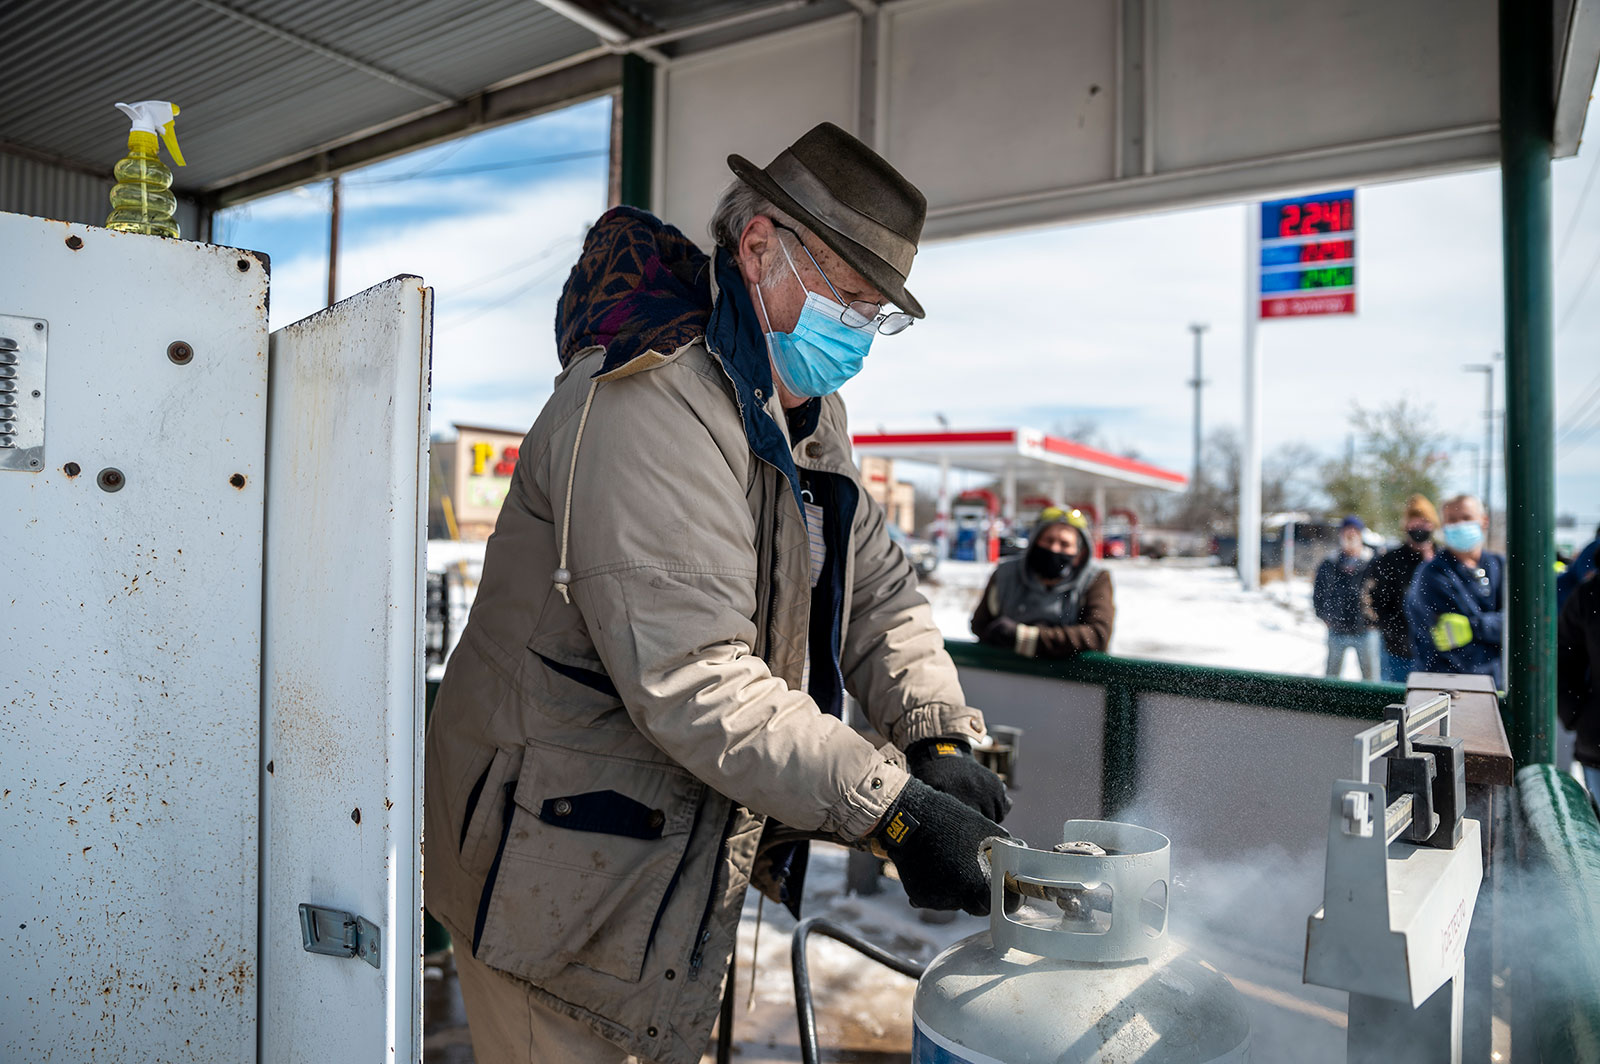 A man fills a propane tank in Austin, Texas, on Tuesday, February 16.